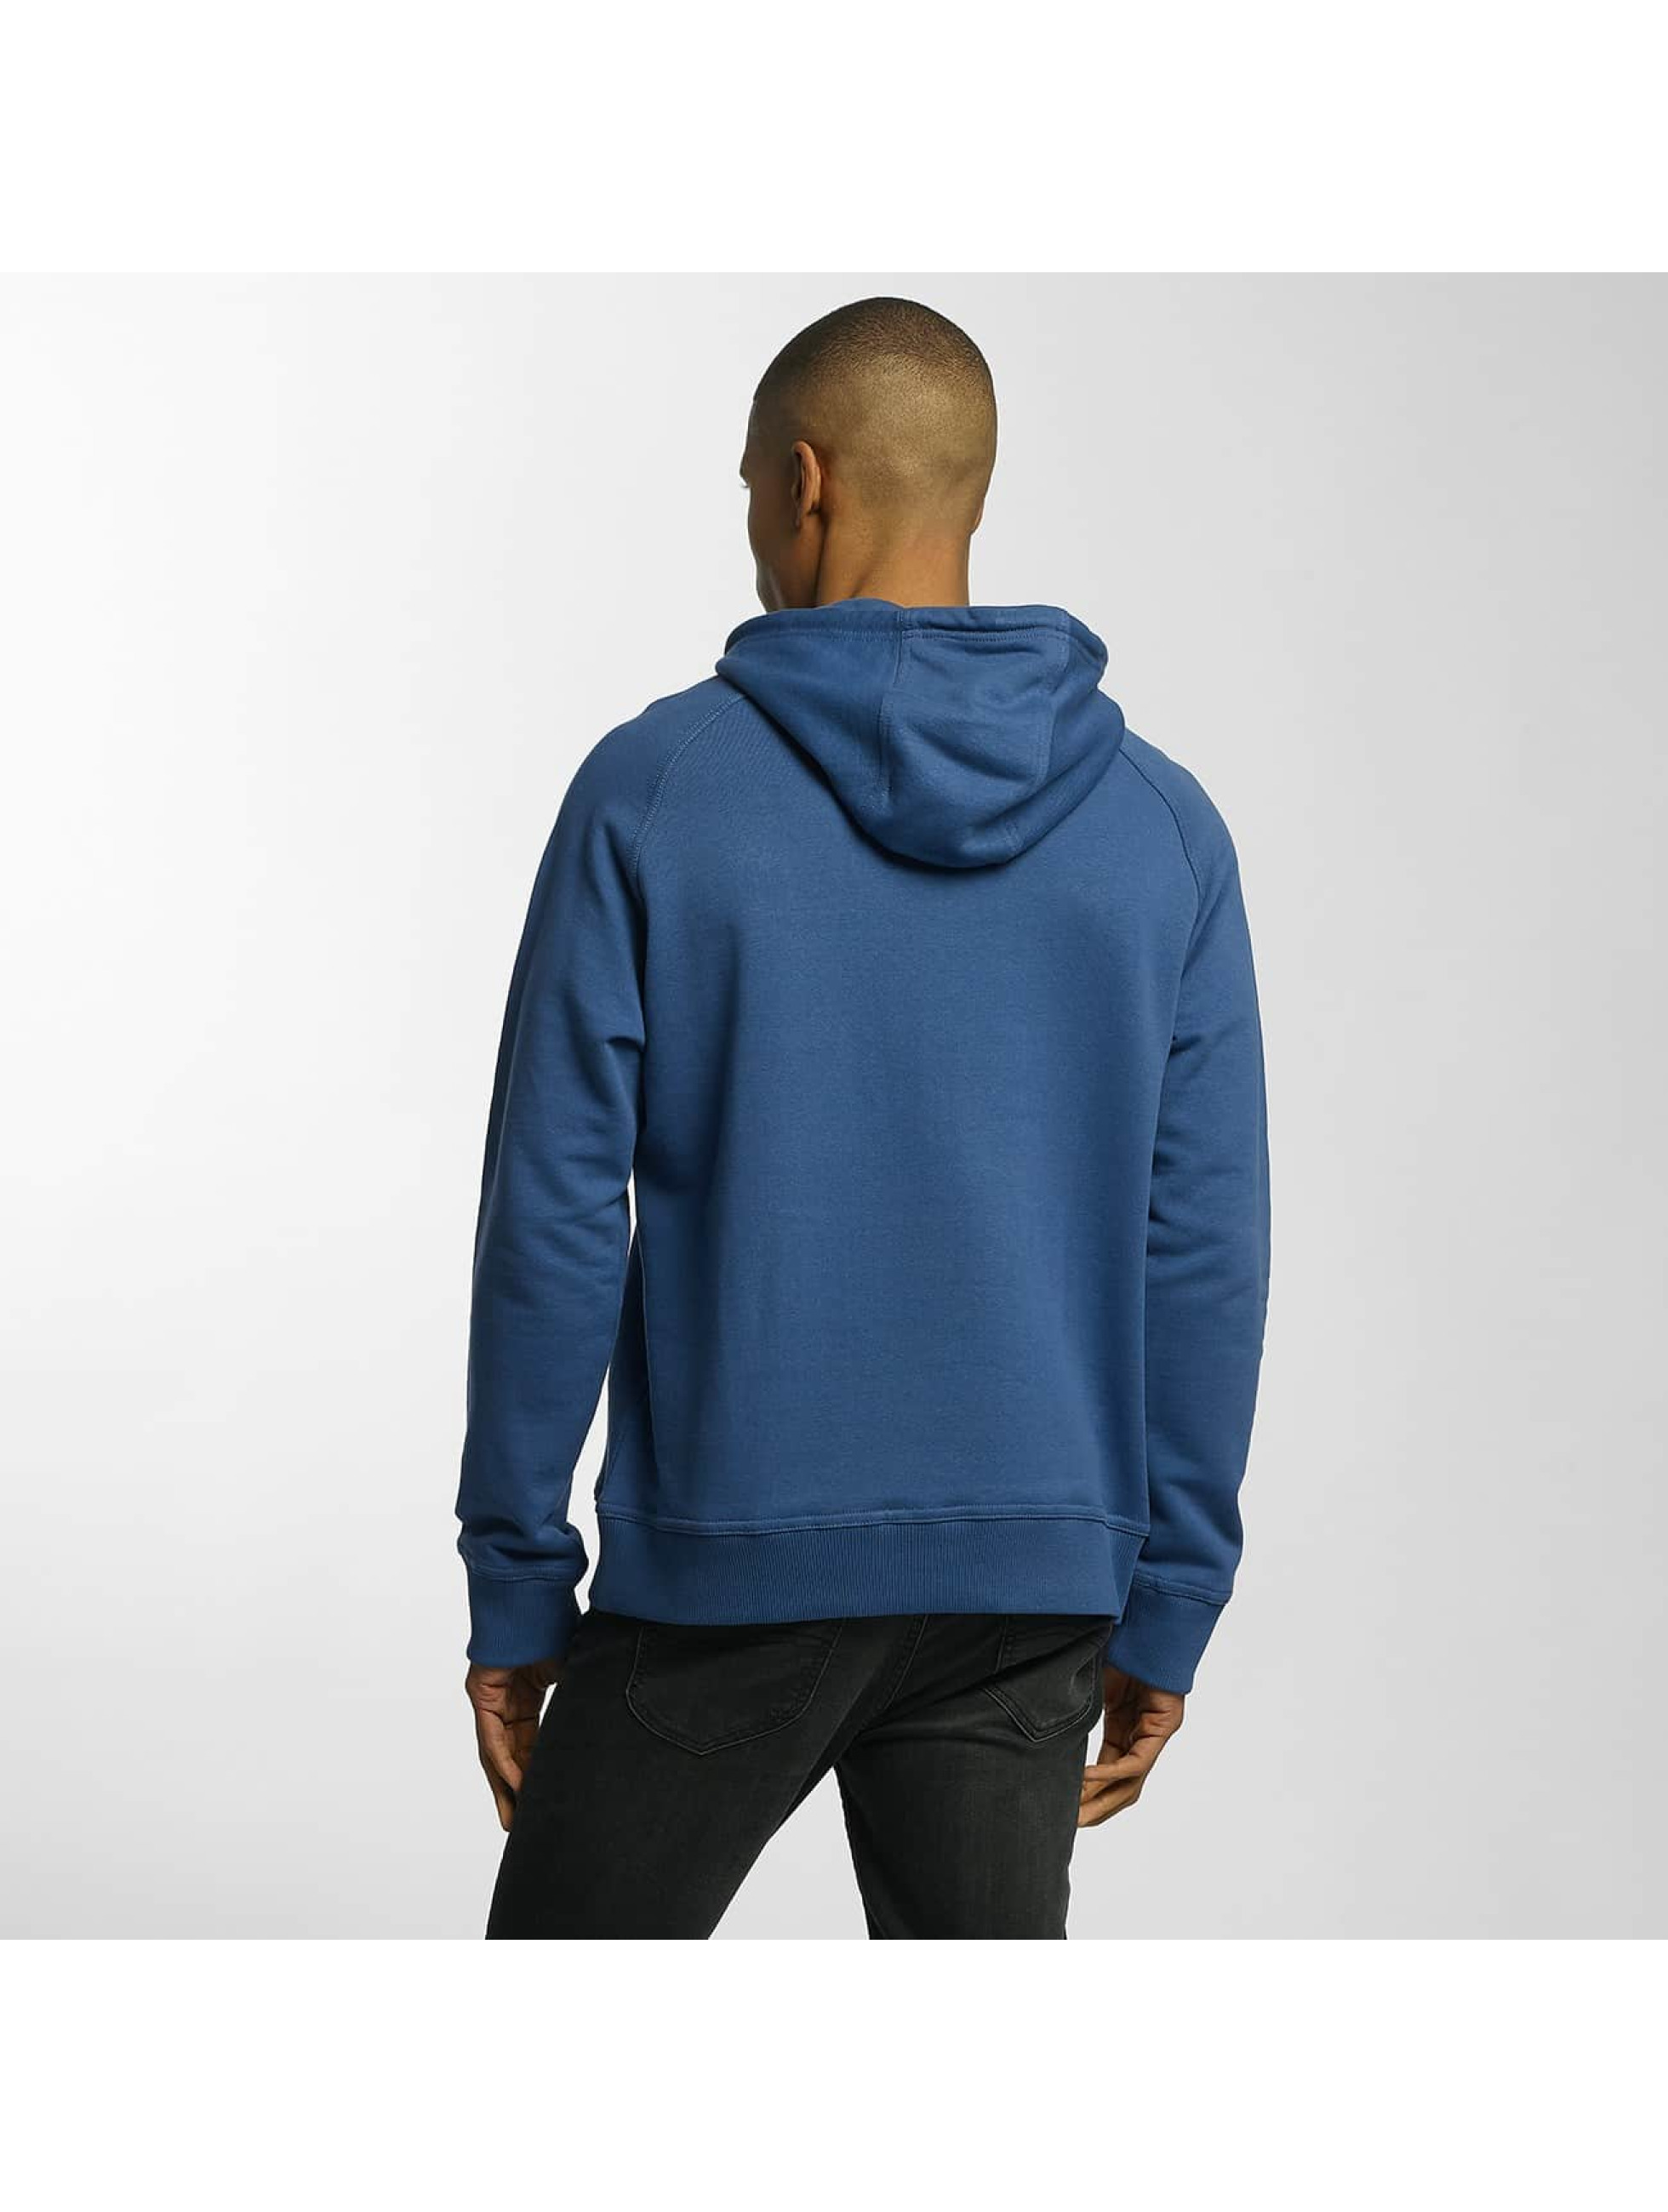 Timberland Hoodie Graph blue